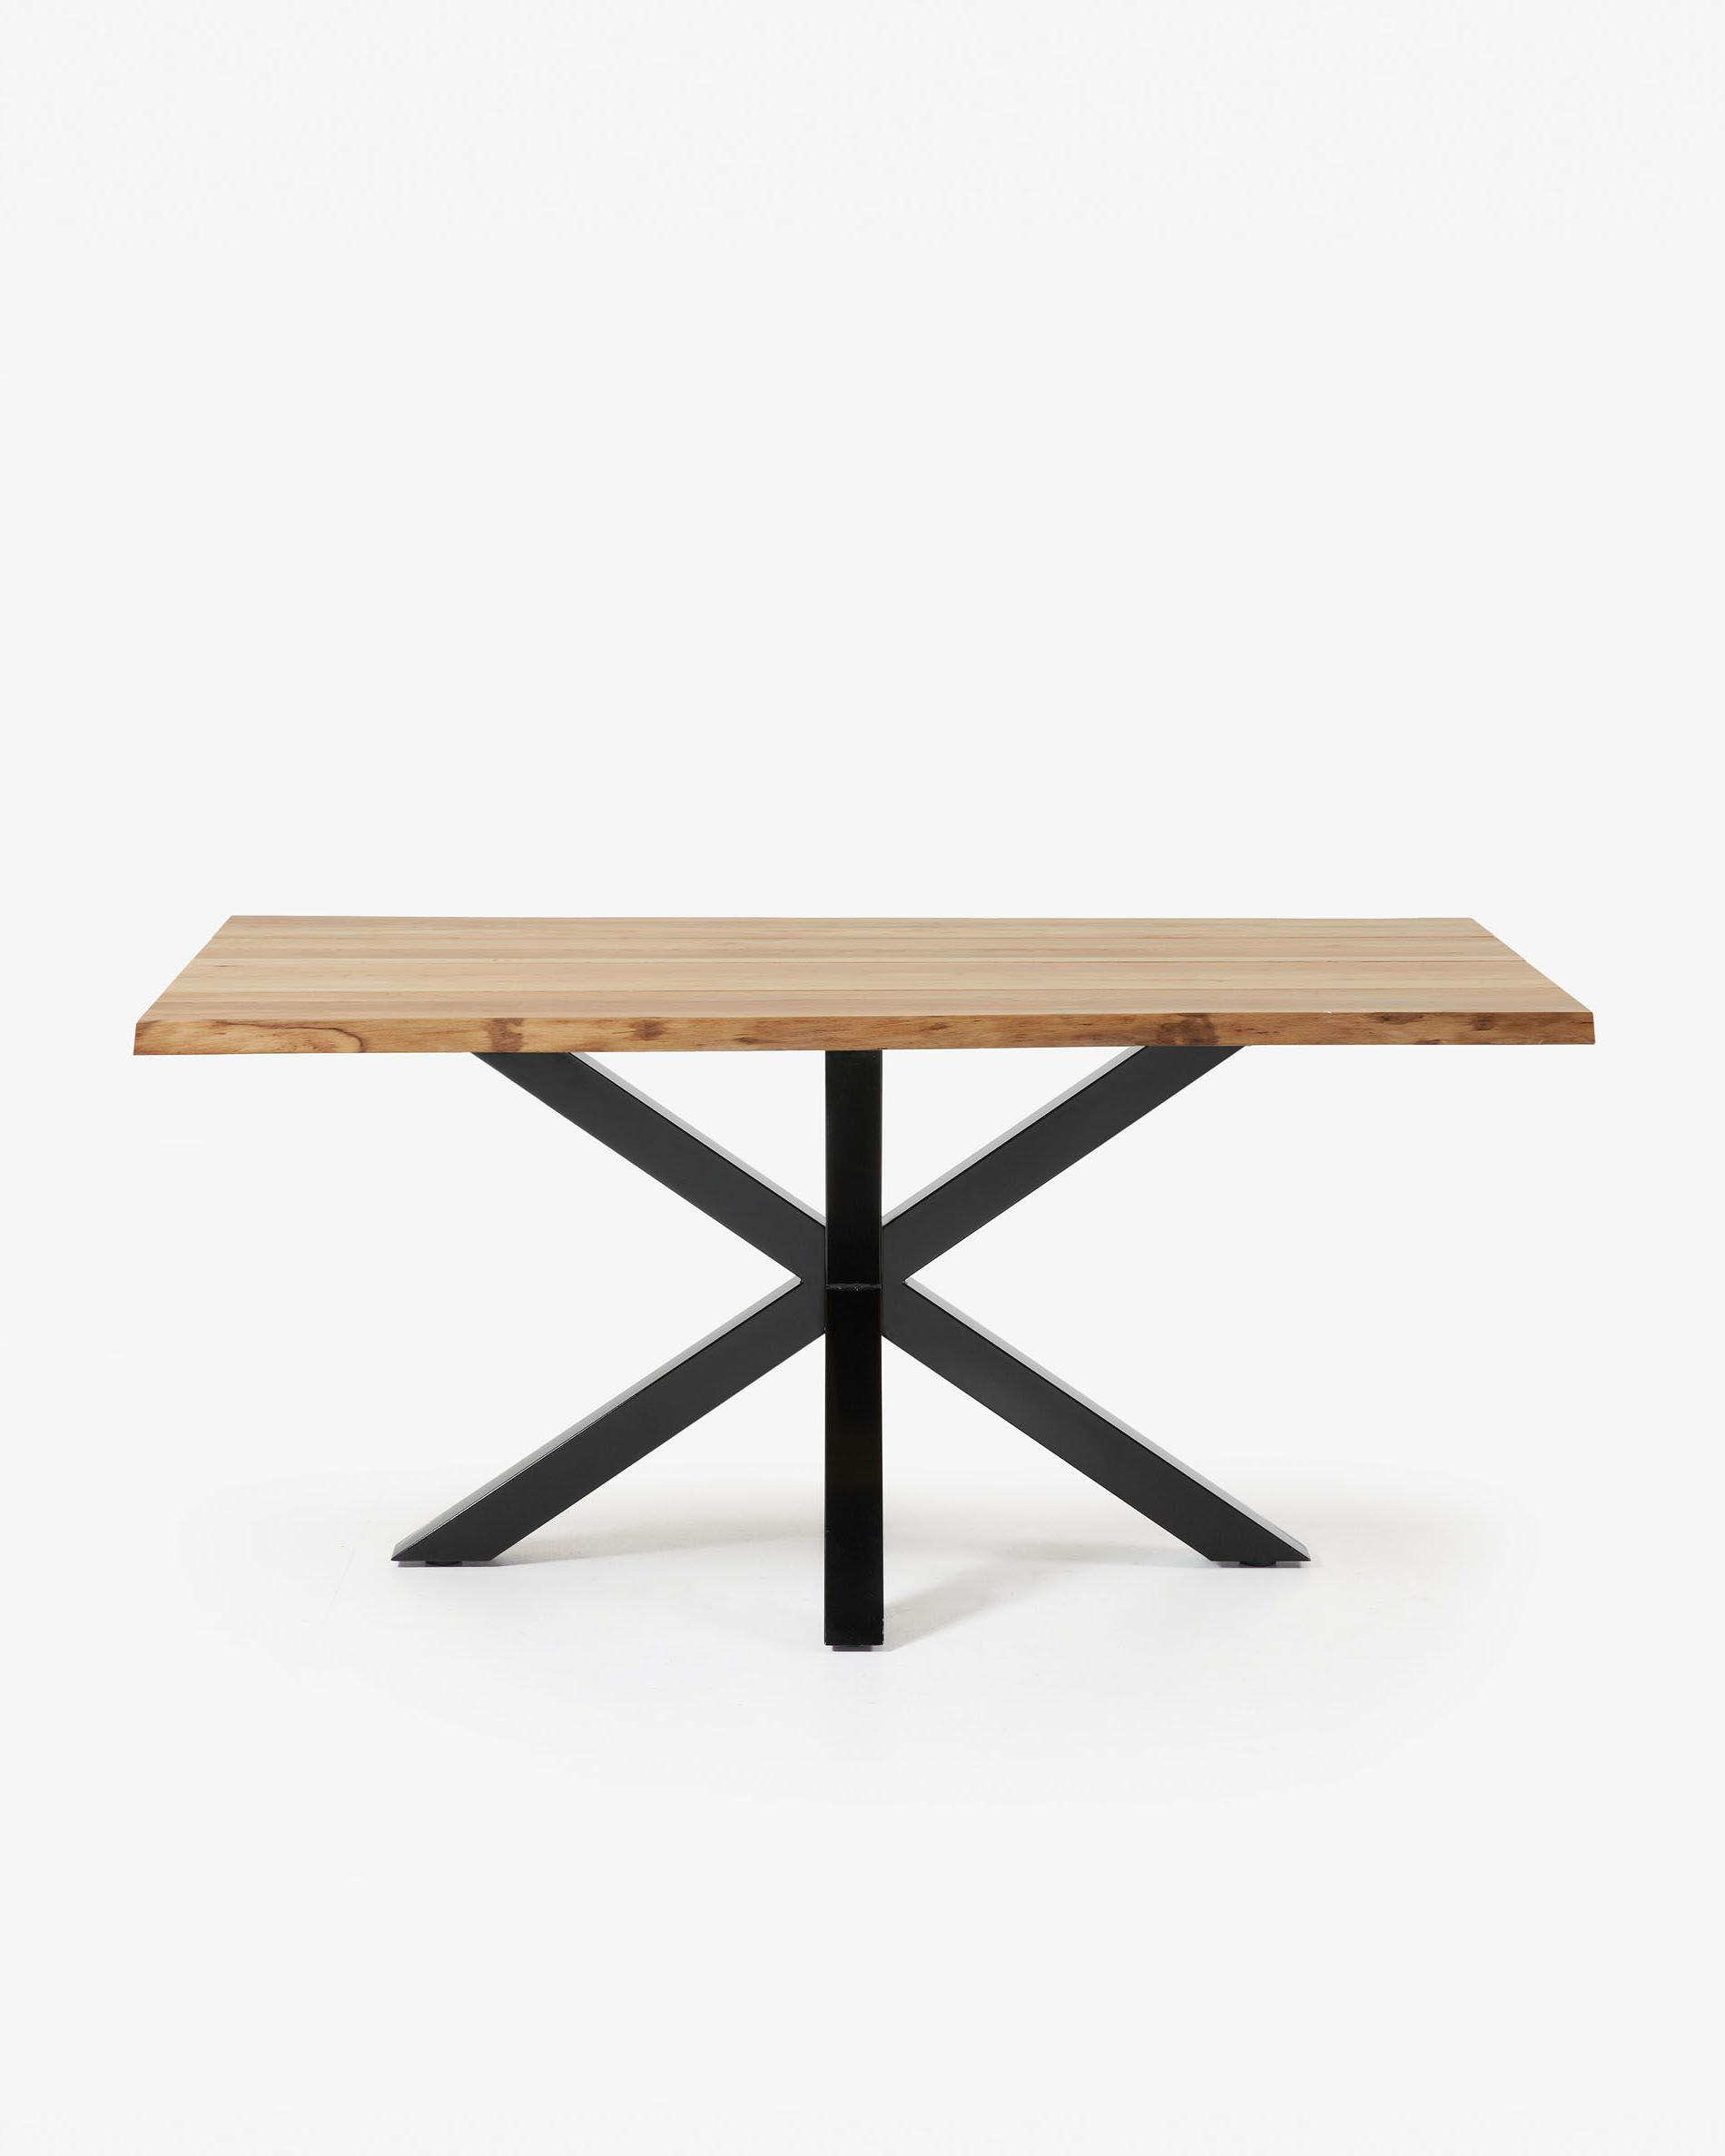 Dining Tables With Black U Legs Throughout Newest Argo Table 180 Cm Natural Oak Black Legs (View 13 of 30)